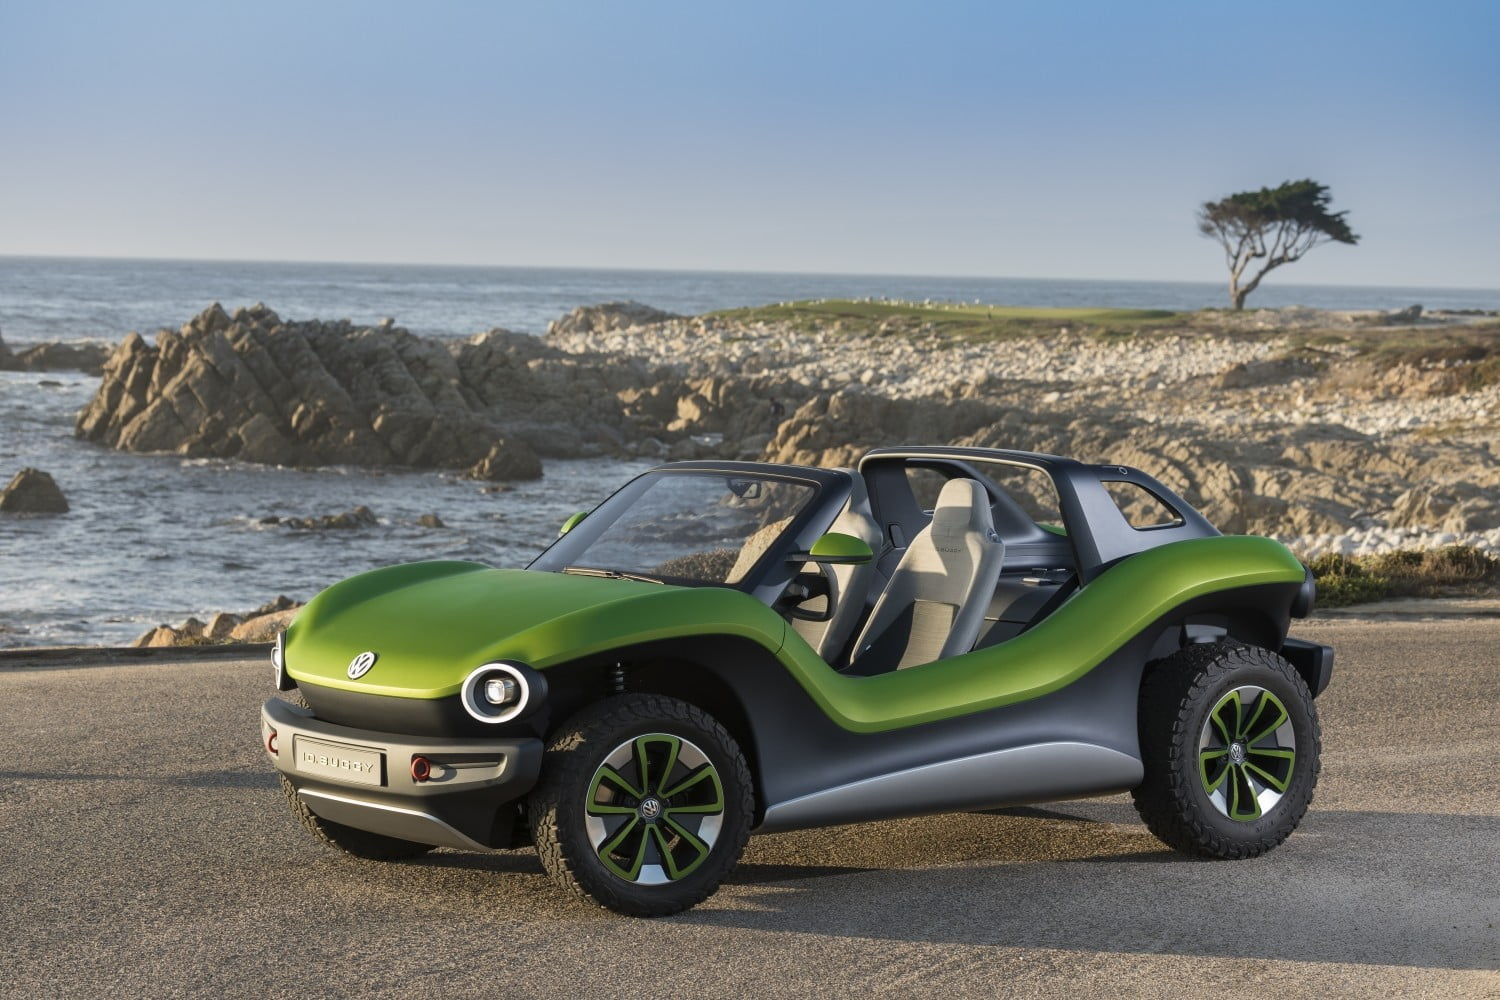 beach to baja dune buggies make news from vw id concept mcqueens manx 11010